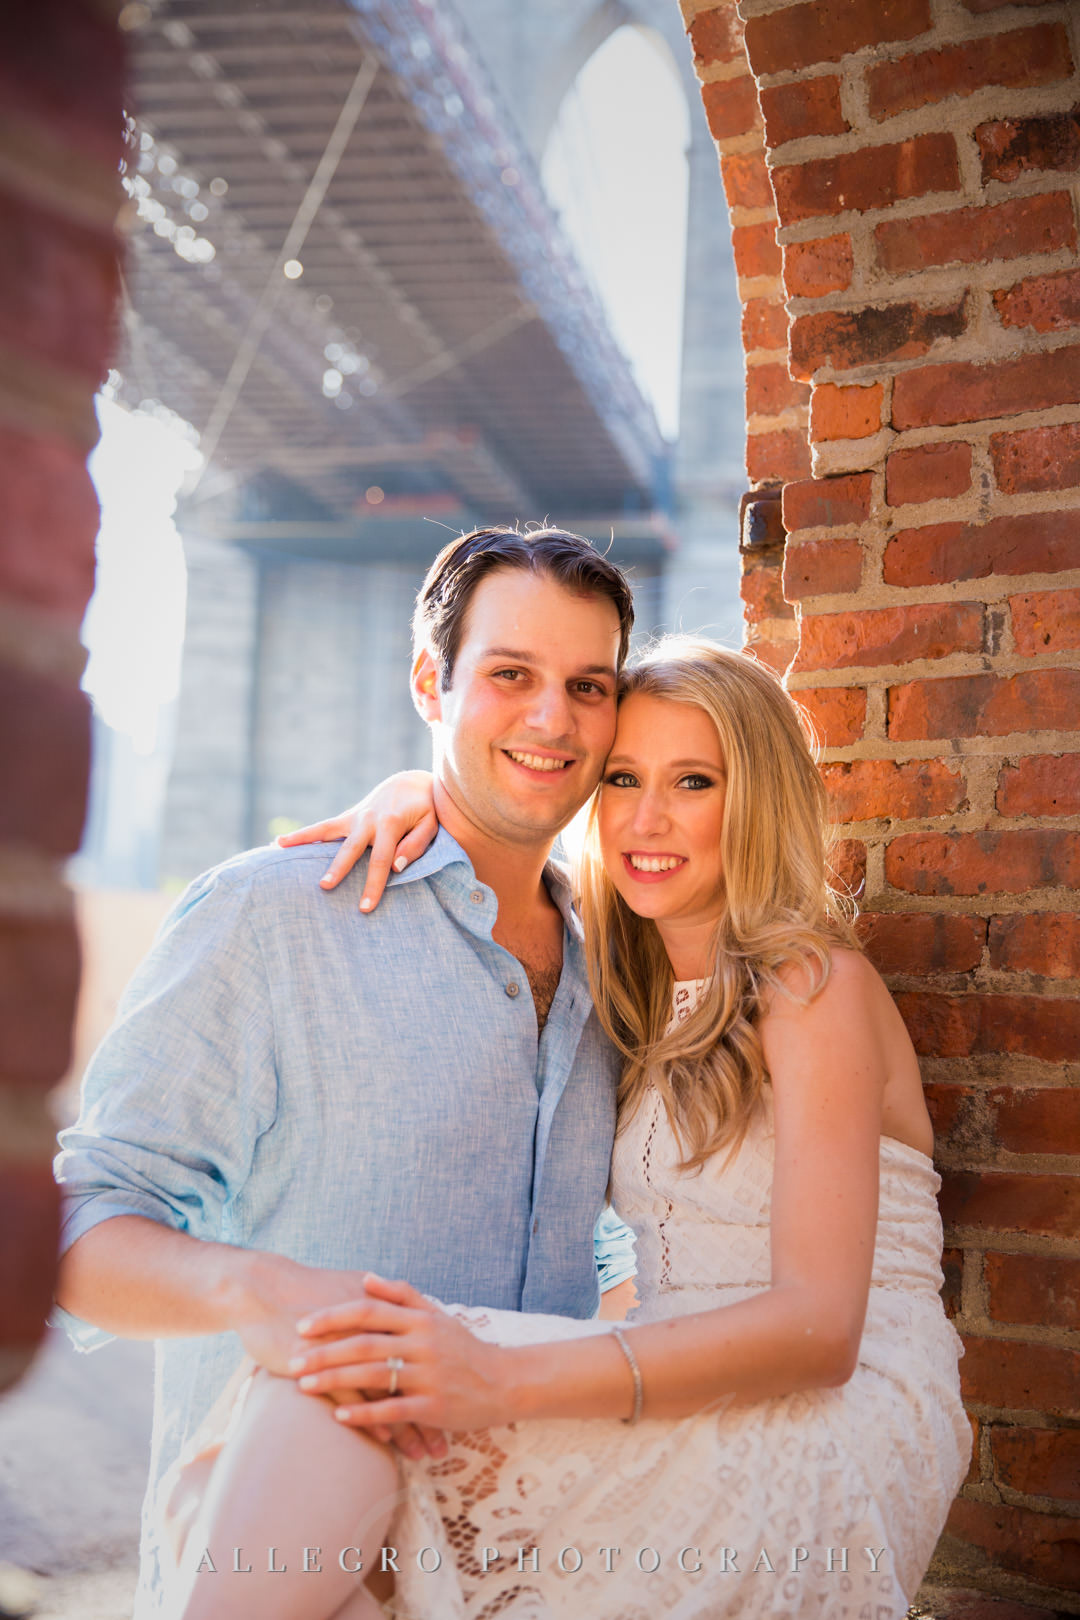 Newly engaged couple smiling in Brooklyn | Allegro Photography